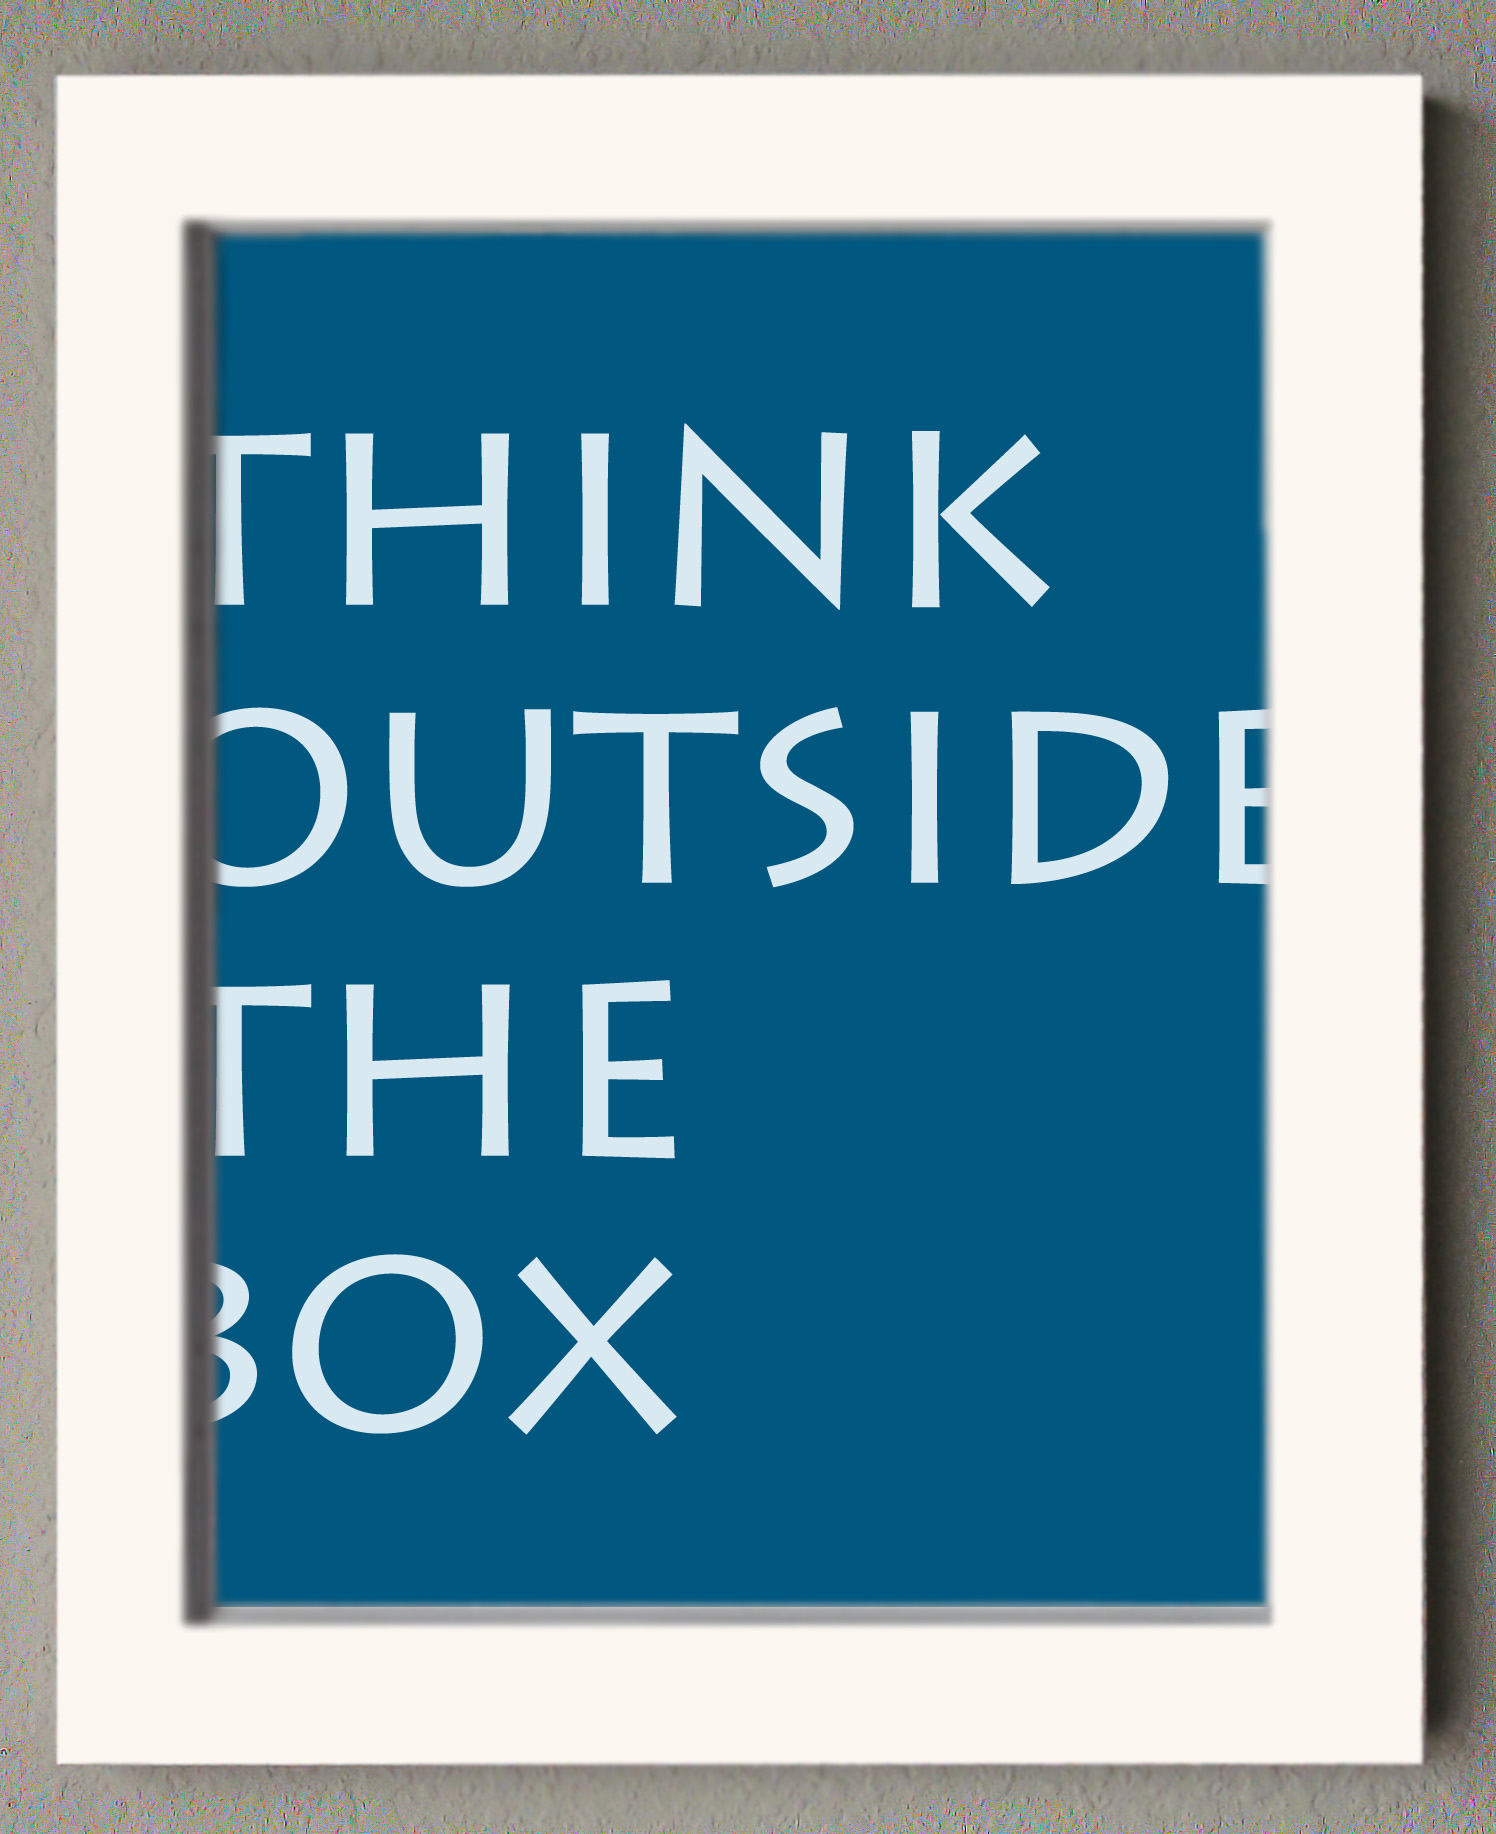 think outside the box framed